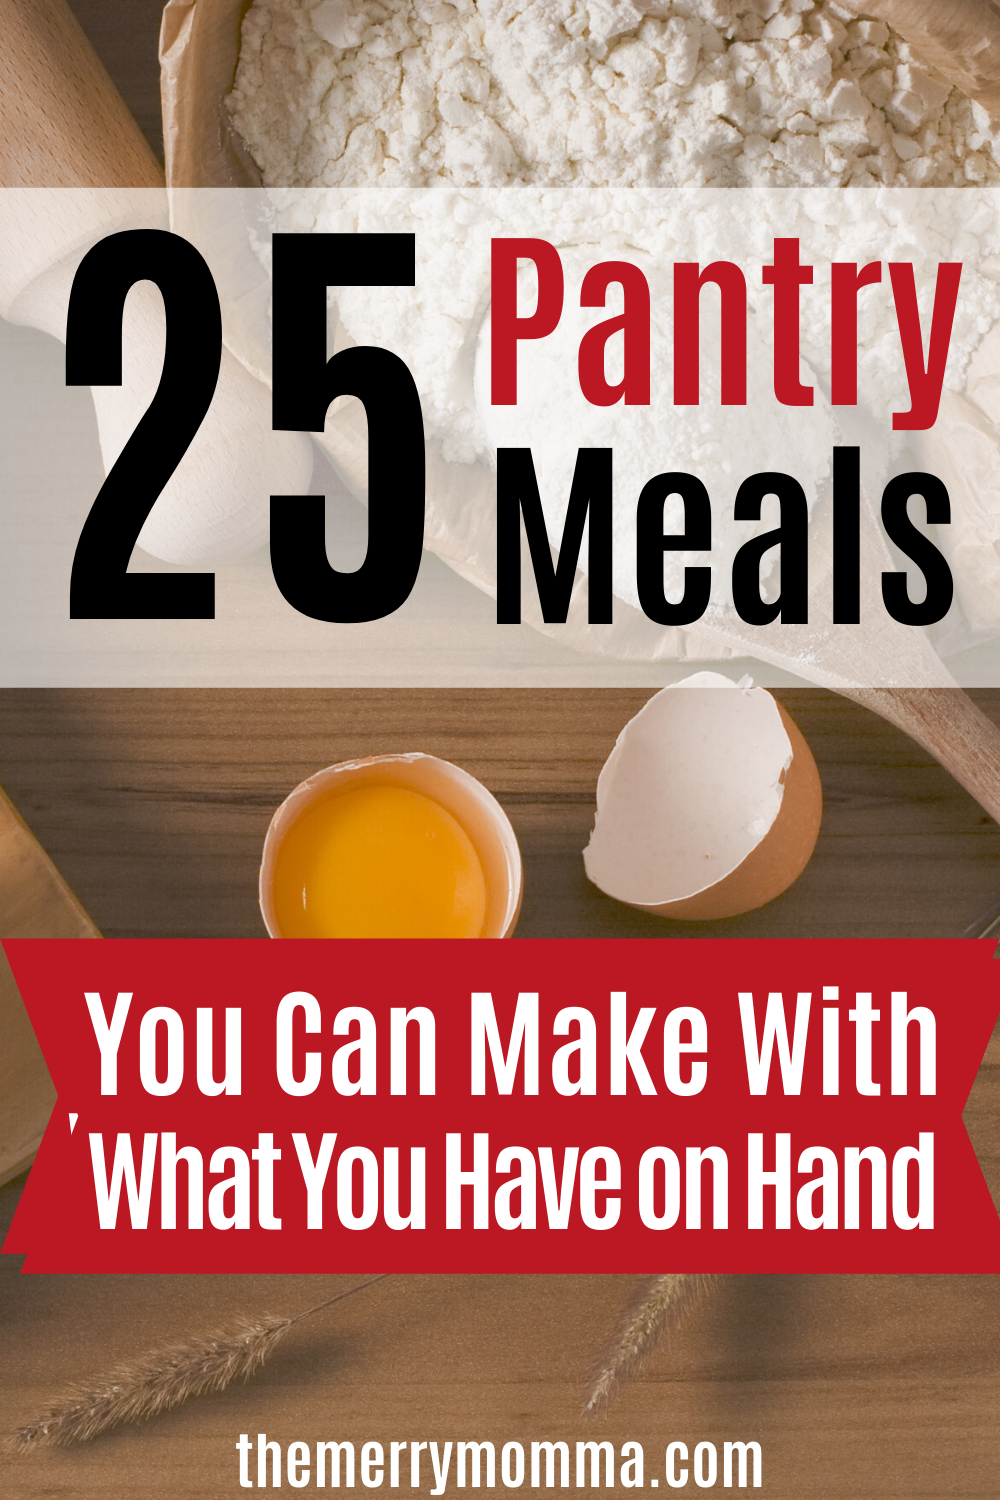 25 Pantry Meals You Can Make With What You Have on Hand